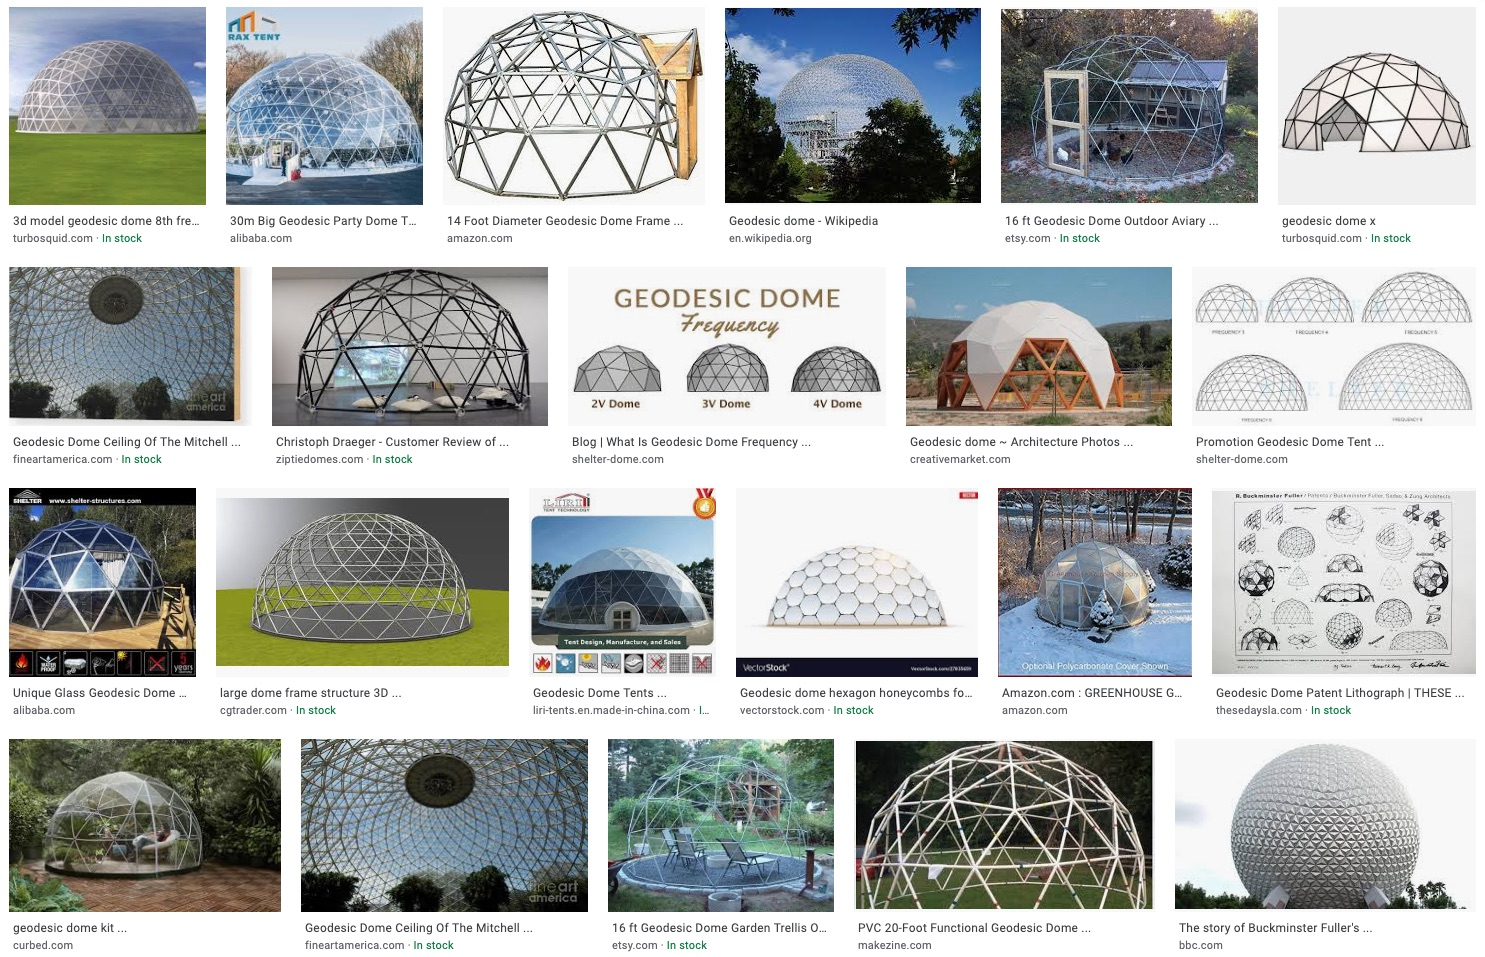 geodesic dome image search results in Google